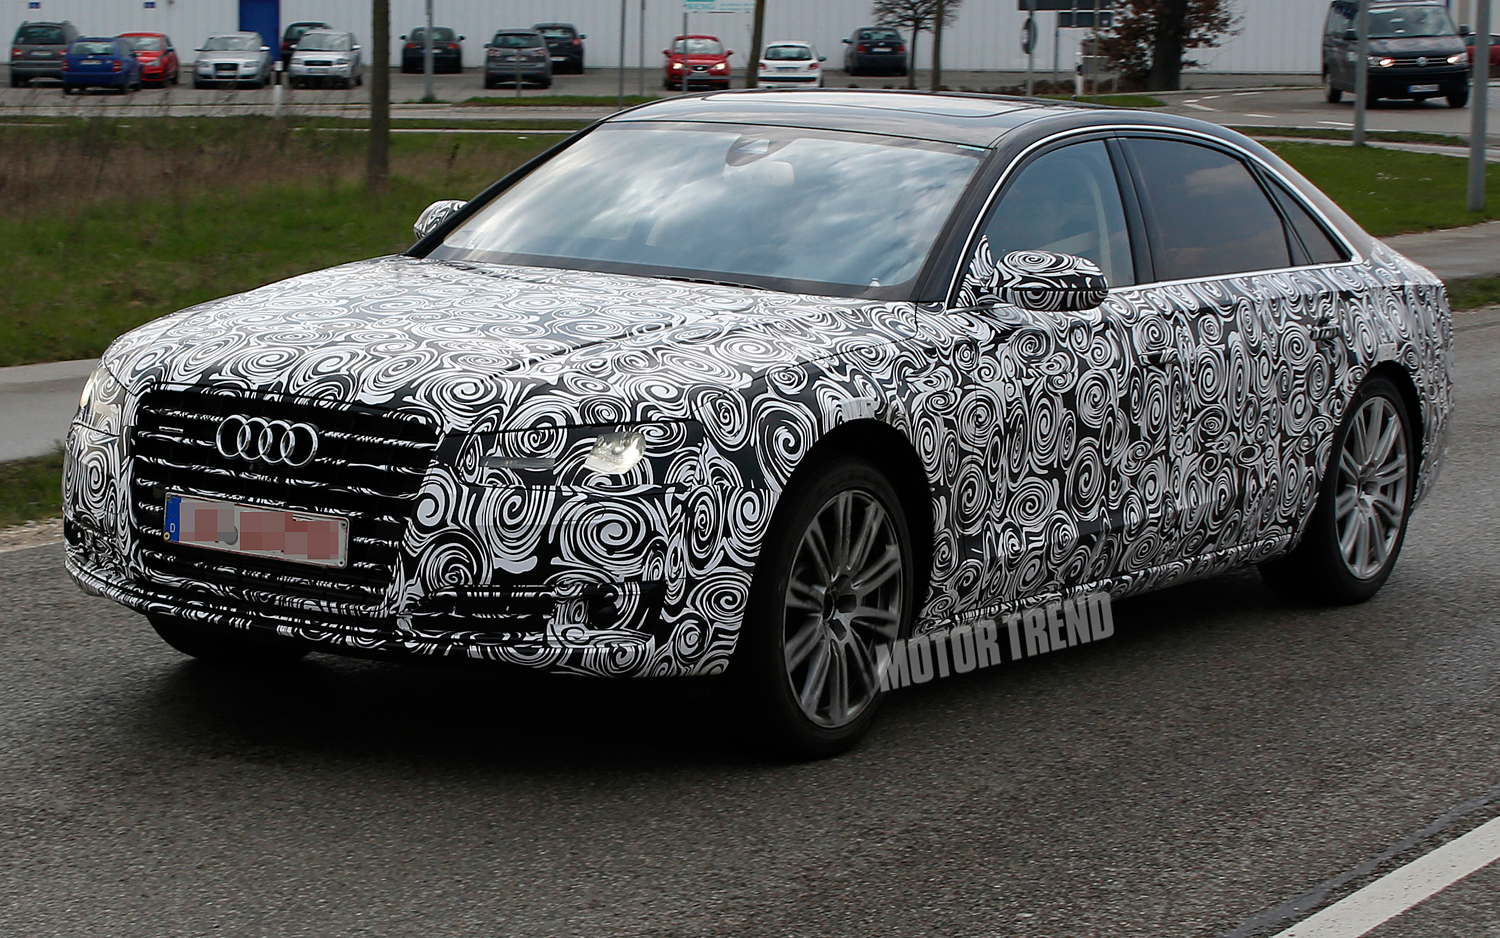 Spied: Refreshed Audi A8 Prepping for 2014 S-Class